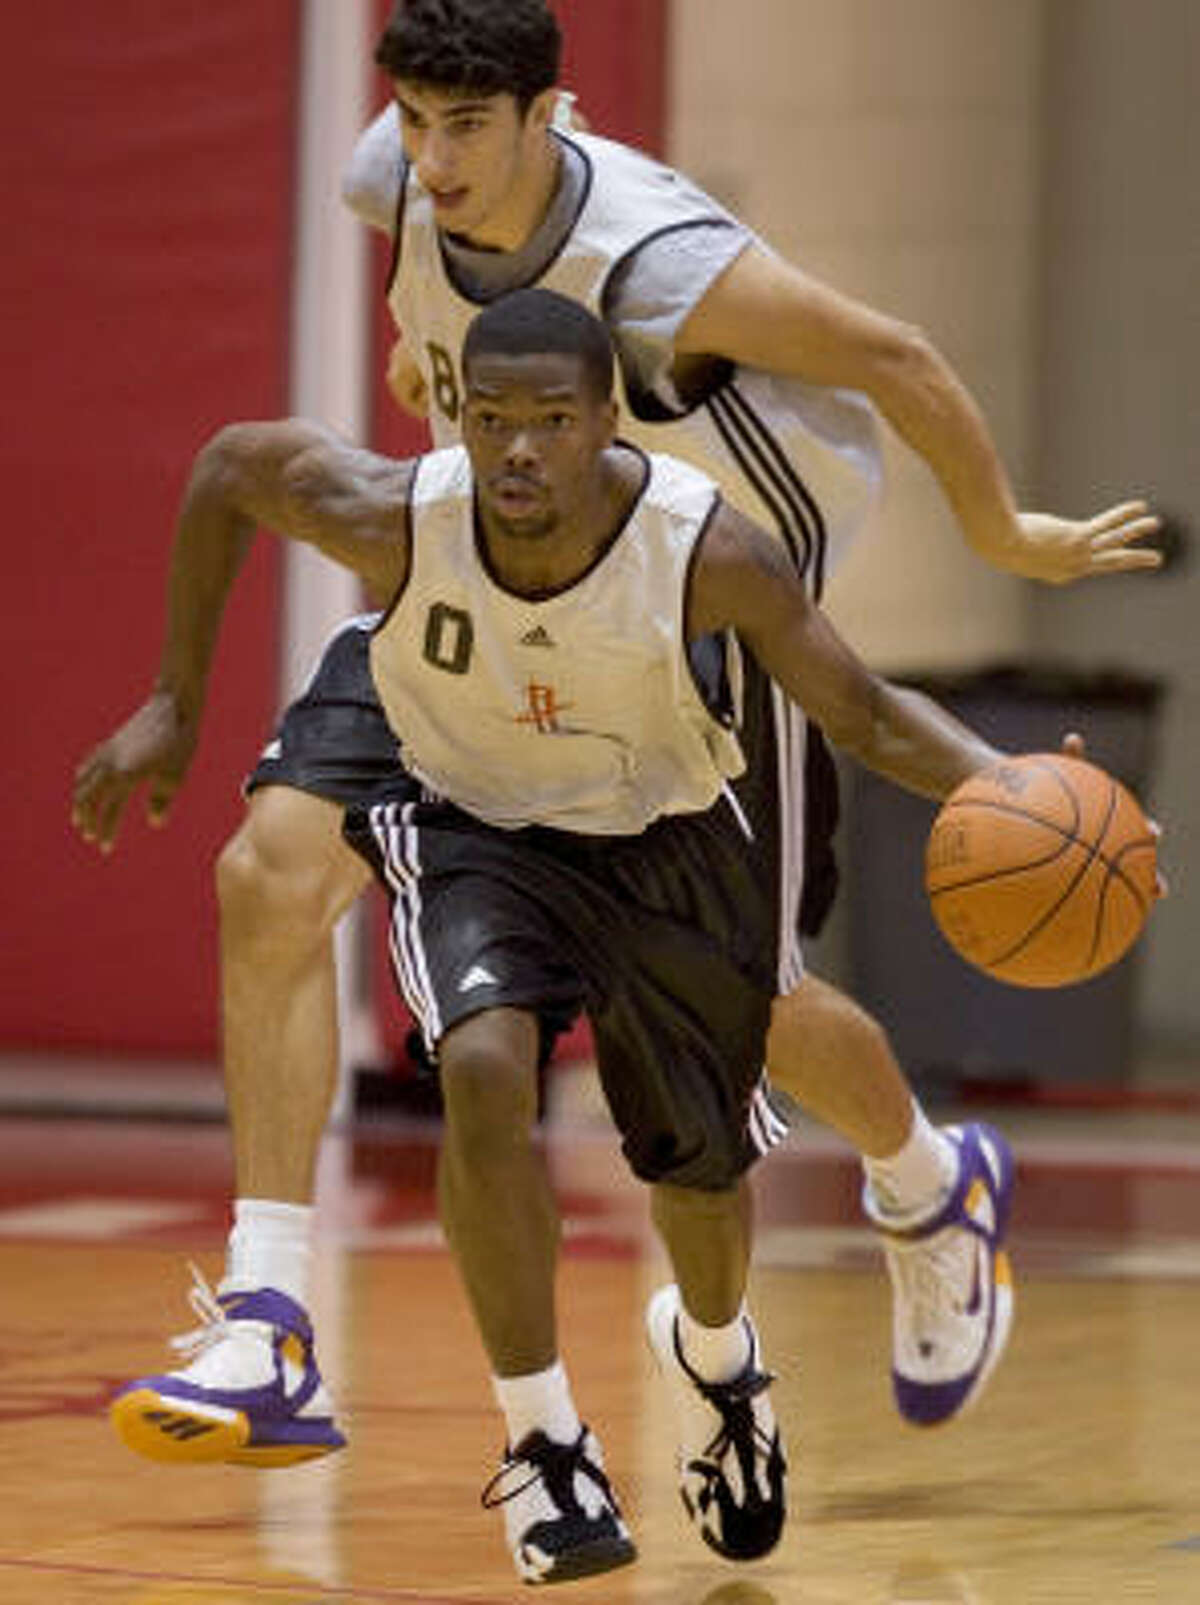 Aaron Brooks signed a multi-year contract with the Rockets on July 7, 2007, just before the team's NBA Summer League practices began.